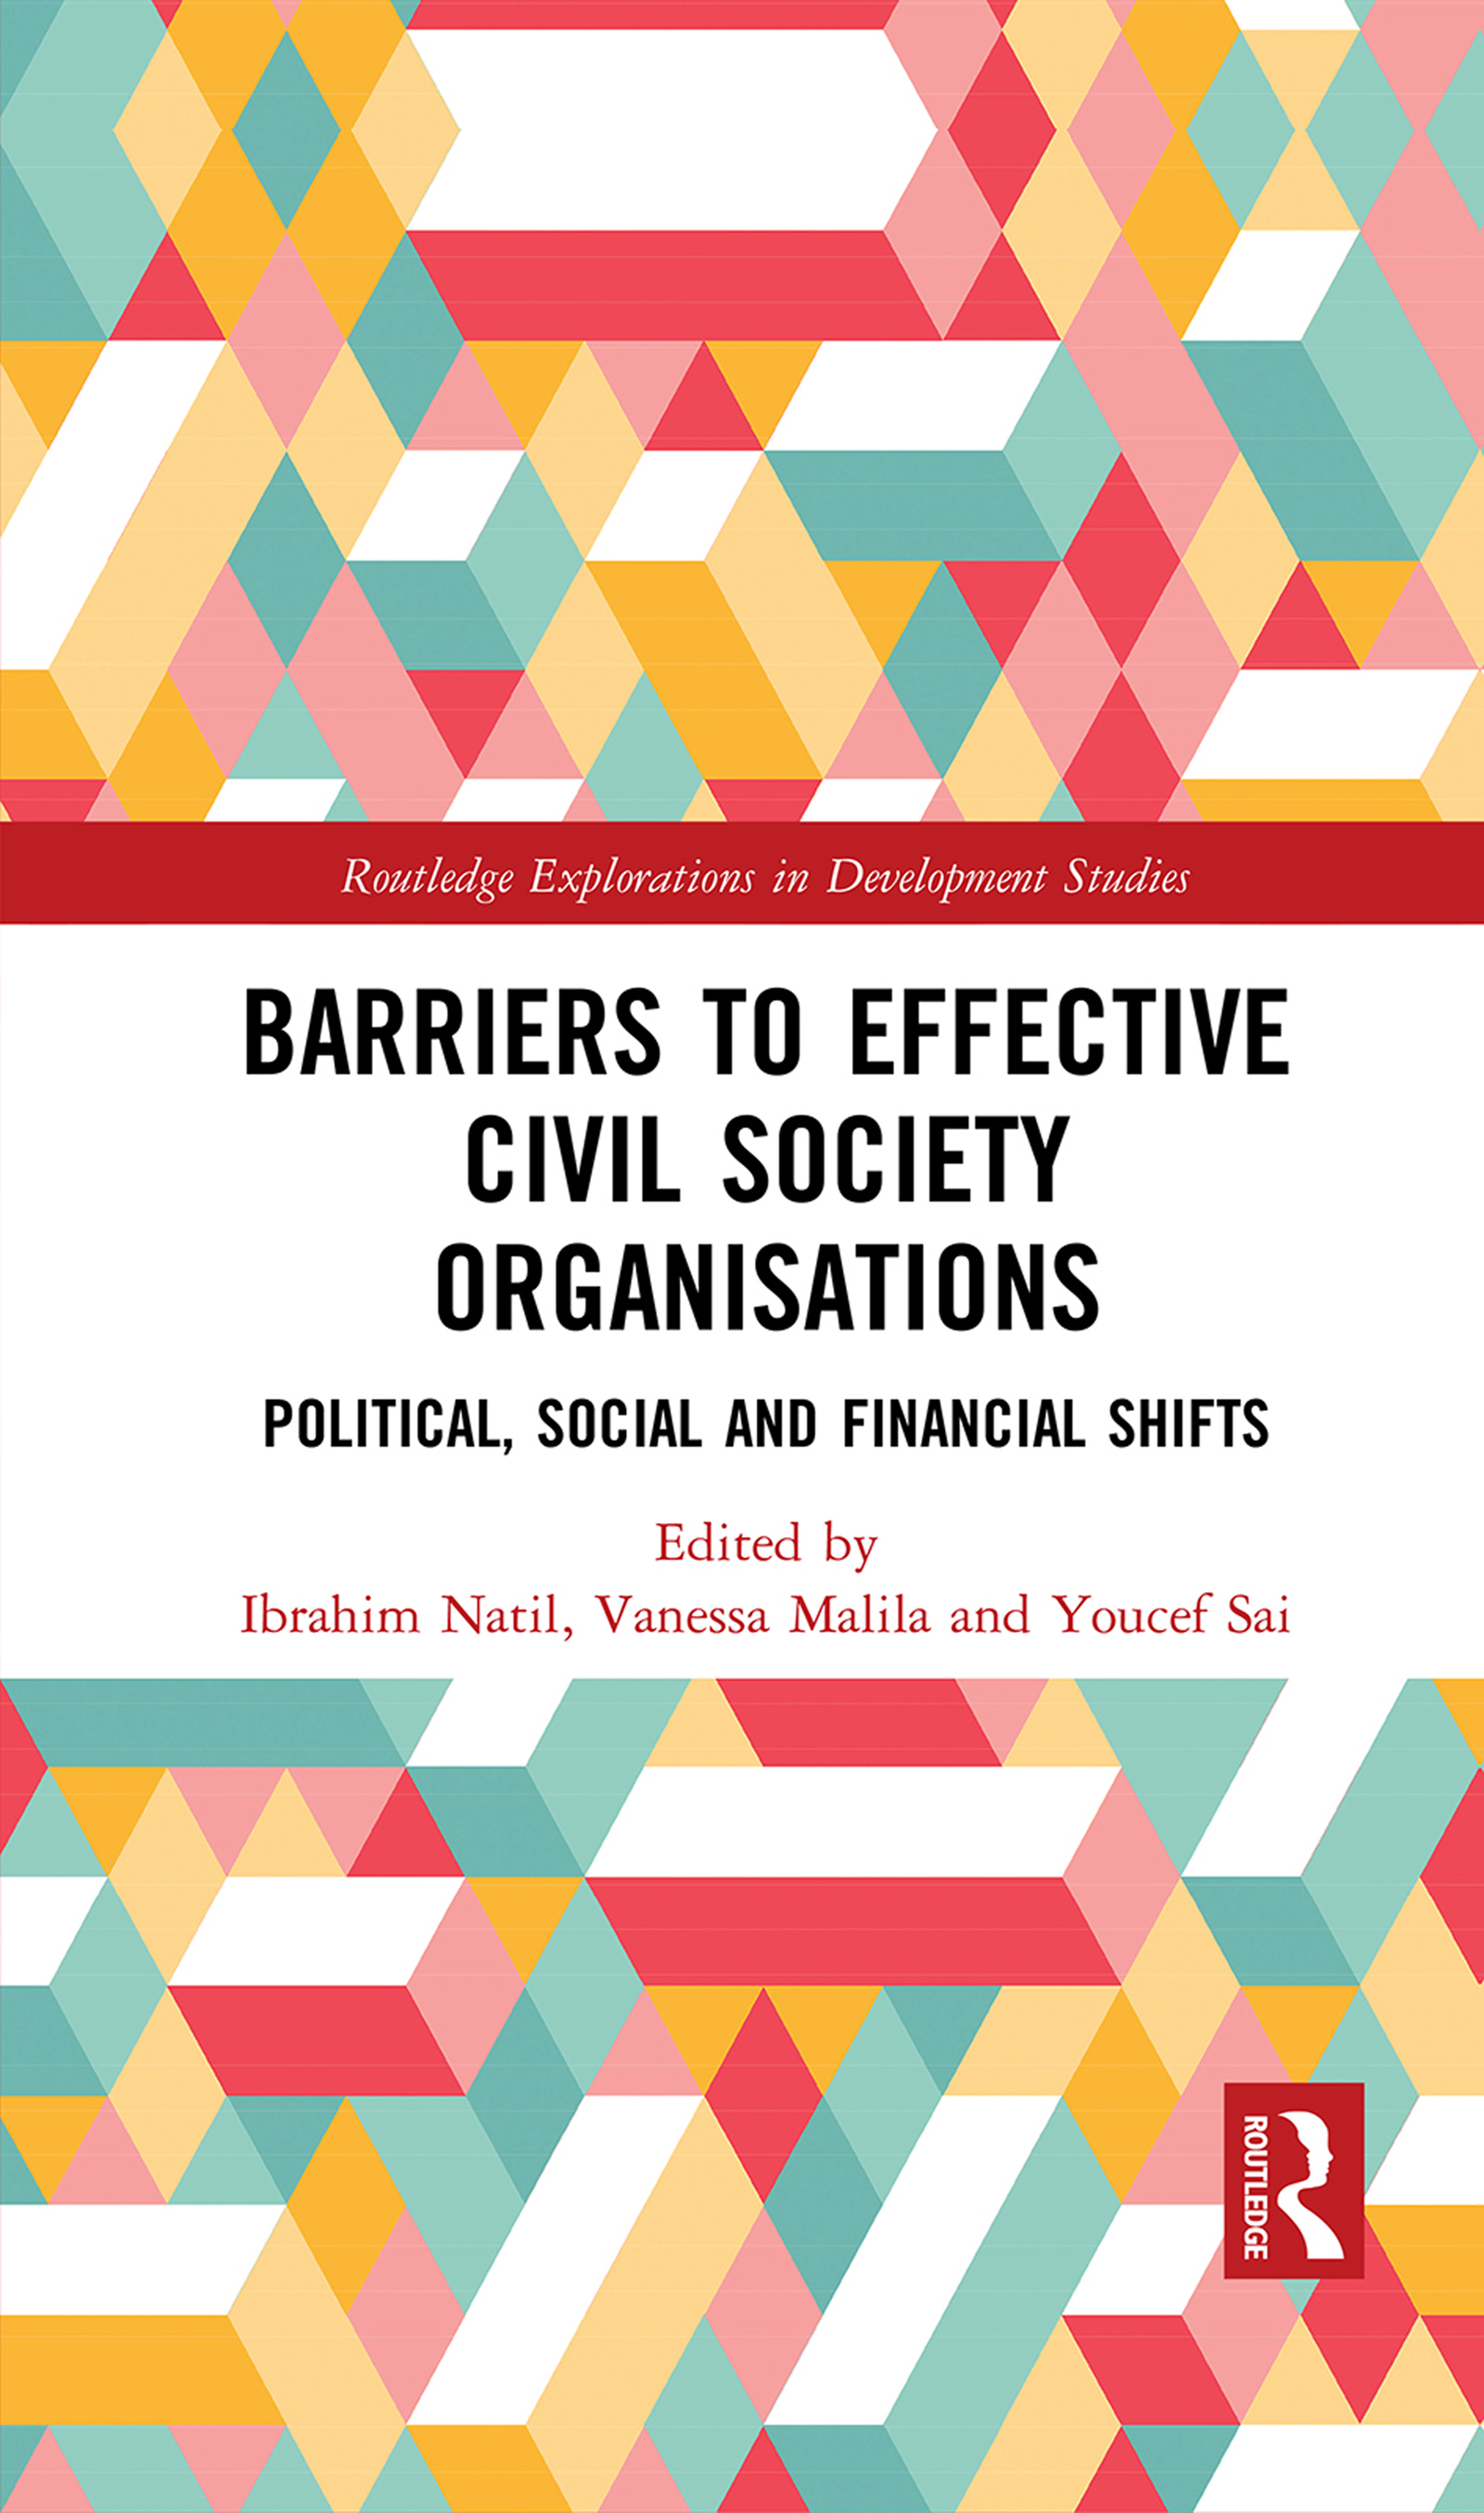 Barriers to Effective Civil Society Organisations